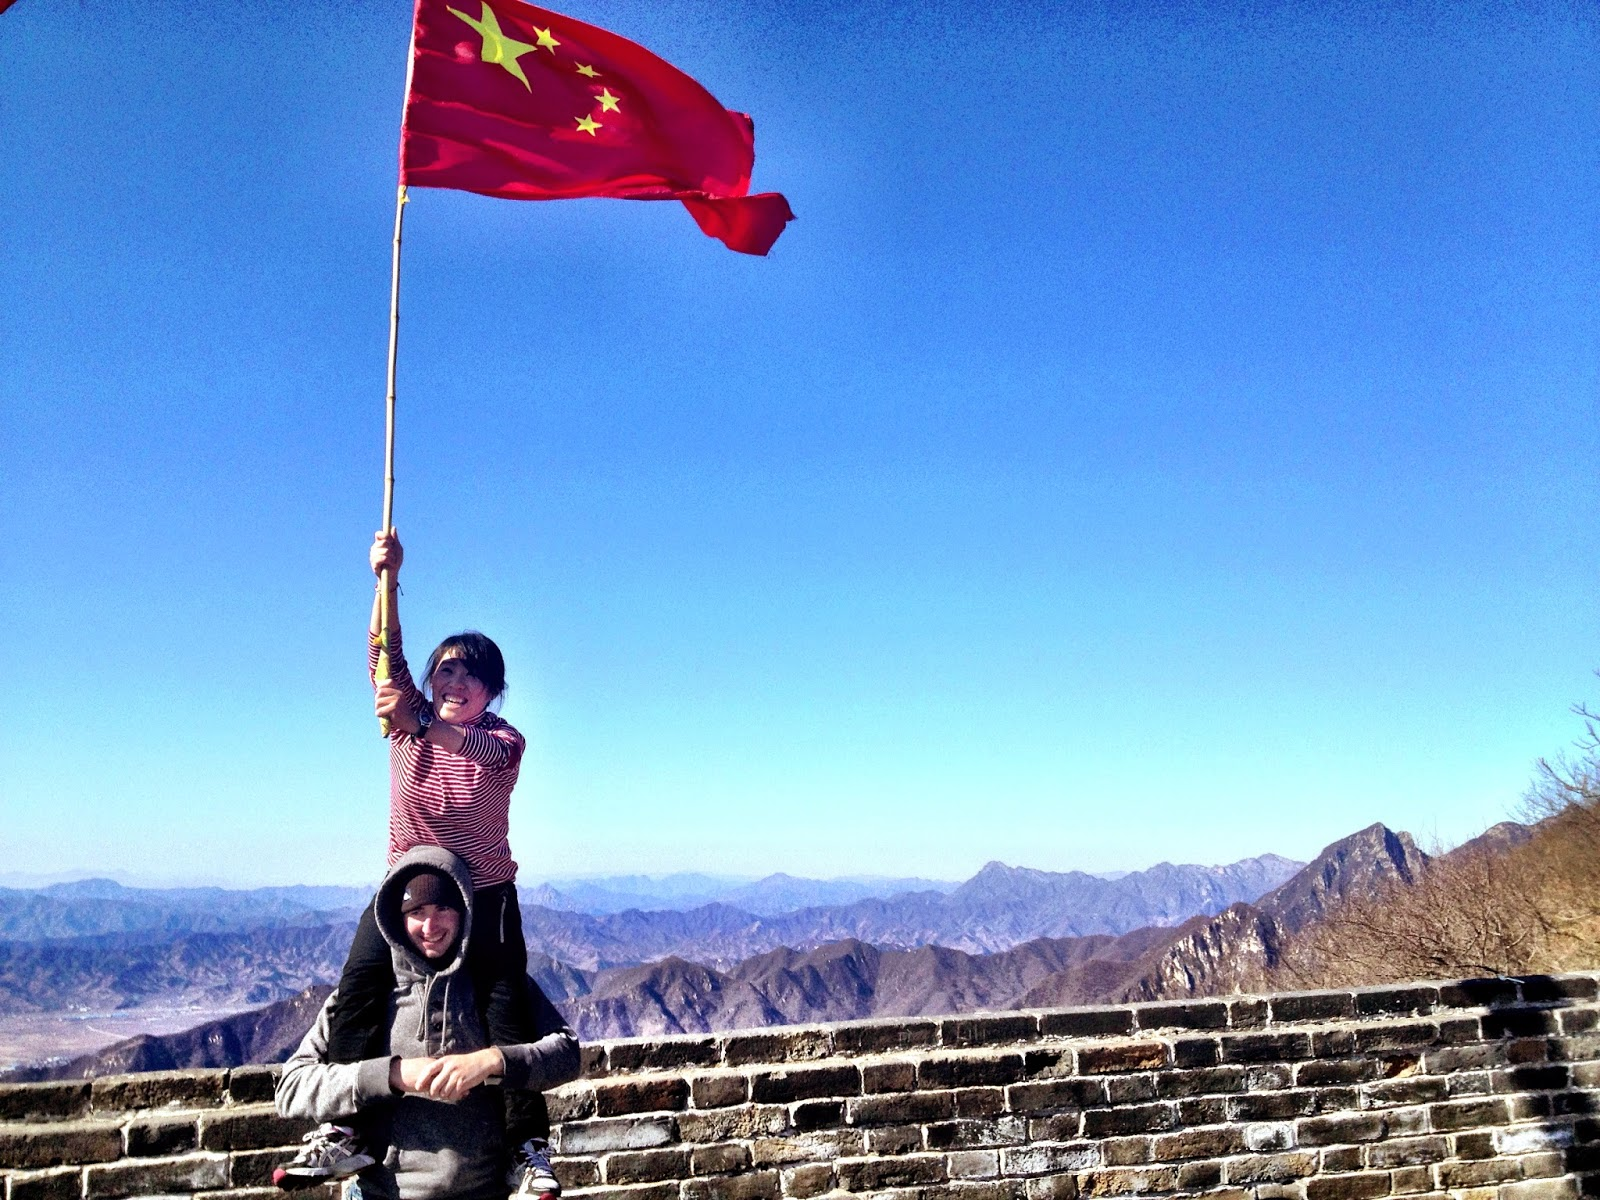 Jenny and Jimmy holding the Chinese flag aloft